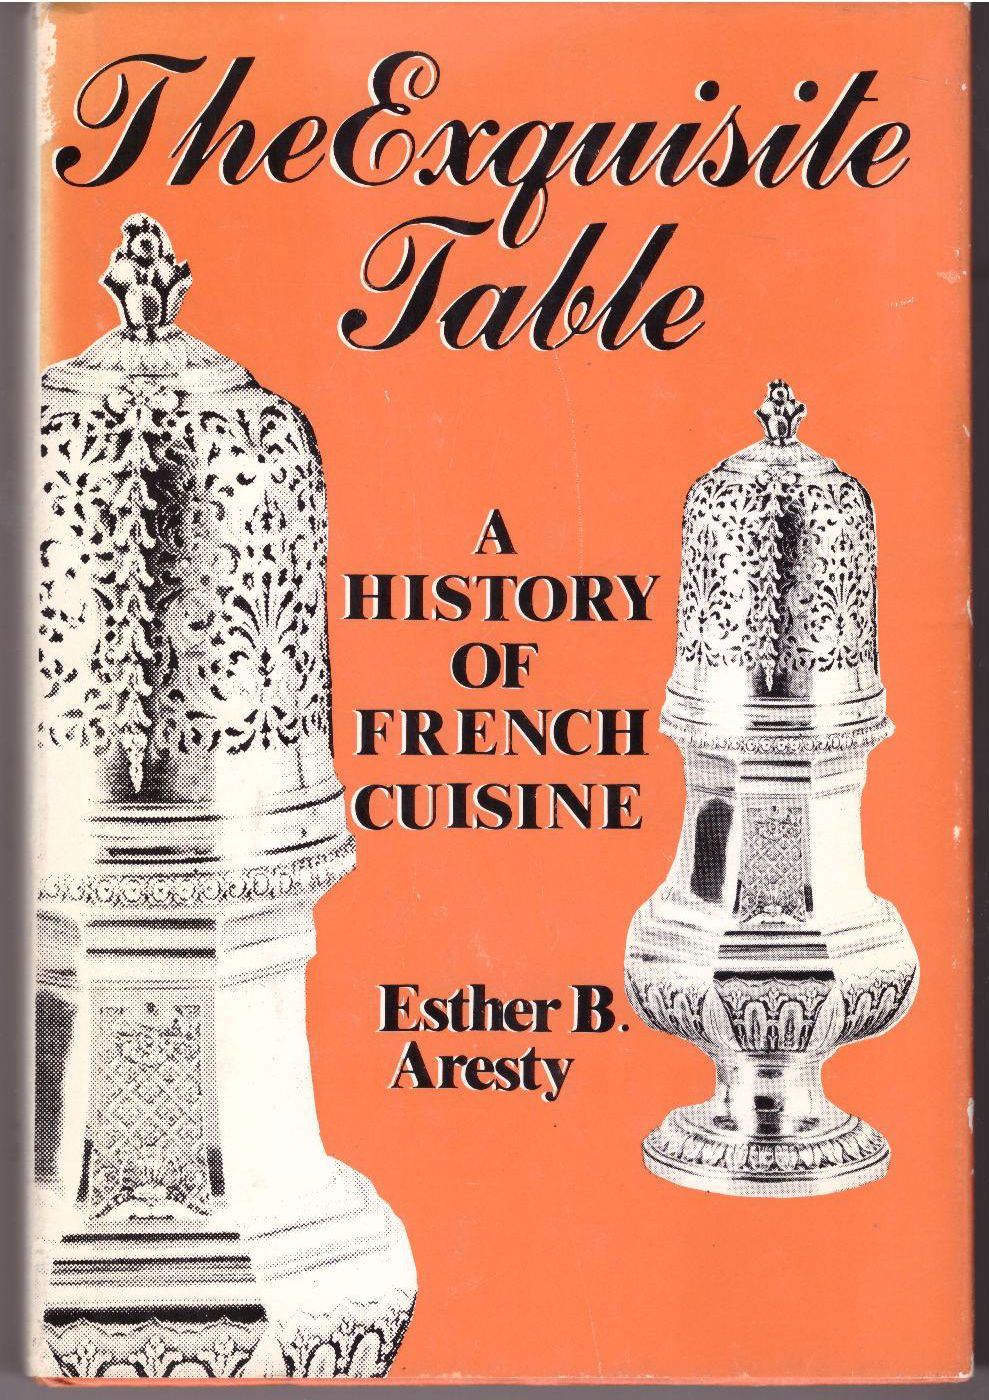 The exquisite table: A history of French cuisine, Aresty, Esther B